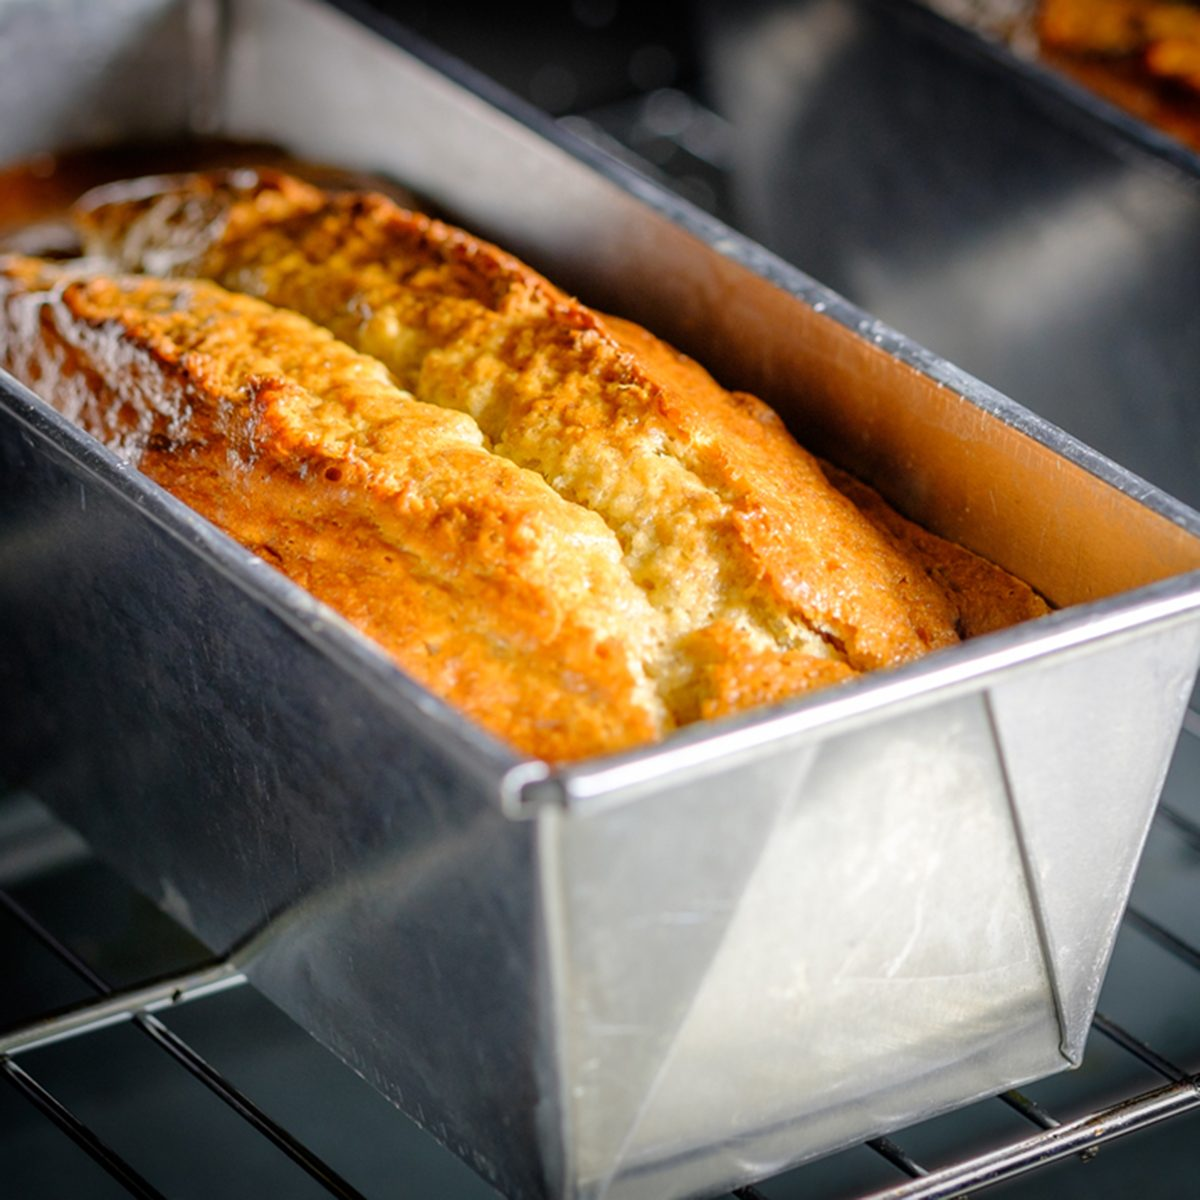 Homemade Banana Bread or Cake in a stainless tray fresh from the oven.